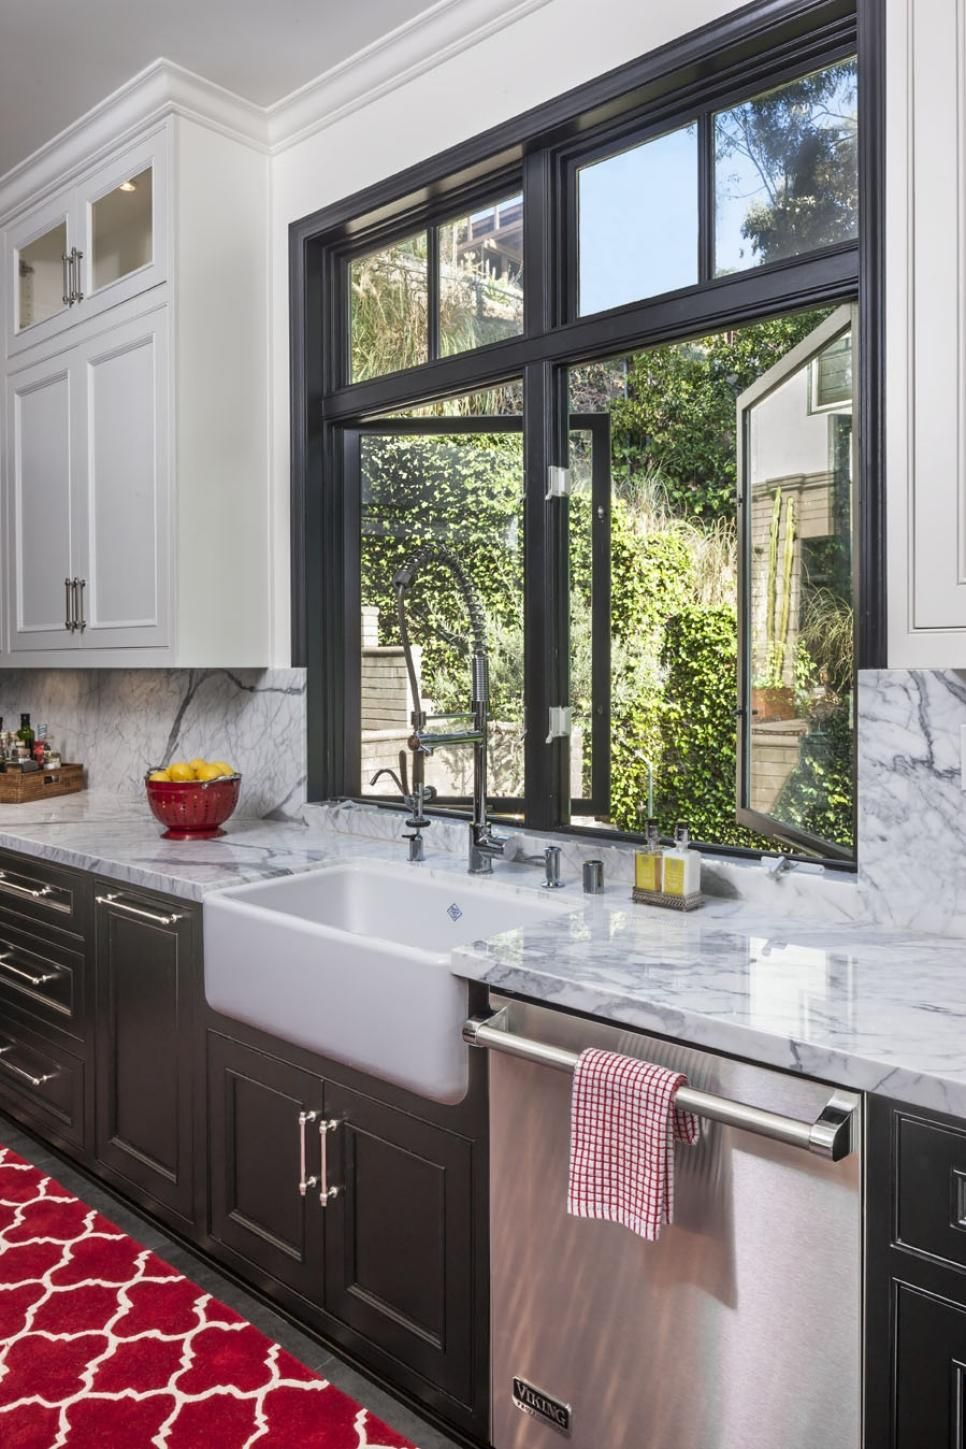 HGTV shows a variety of beautiful settings where apron